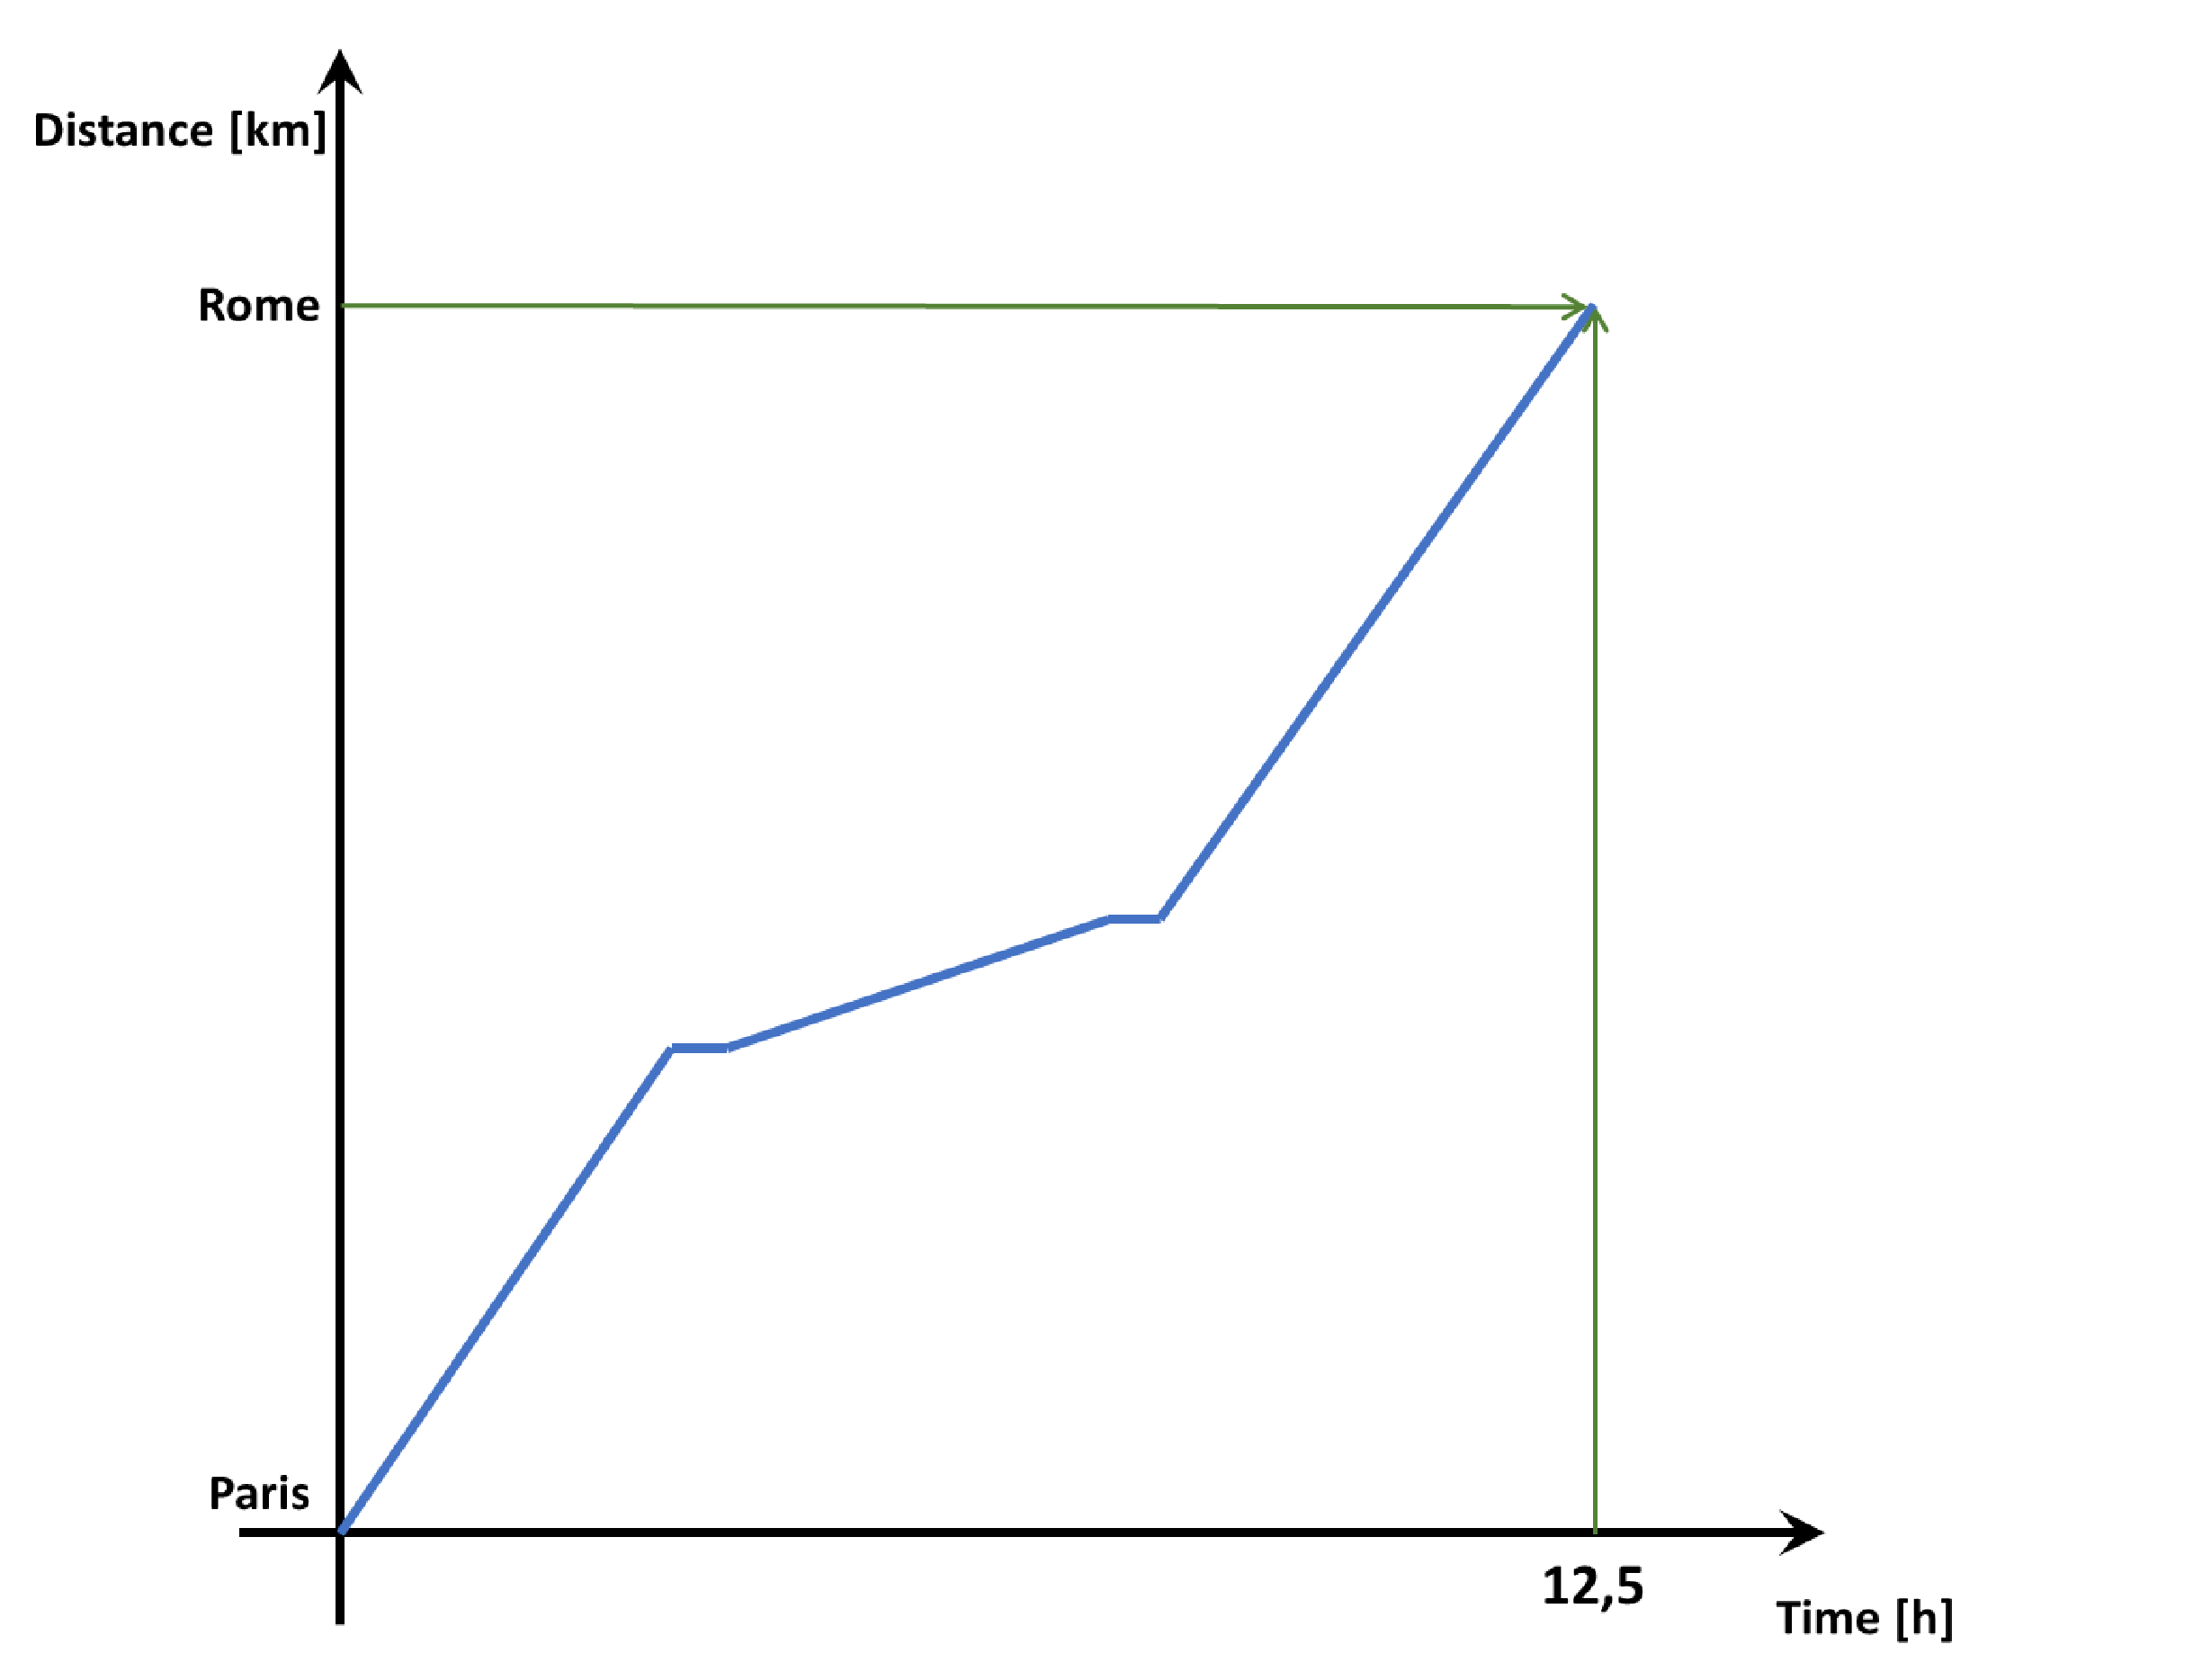 Graph illustrating the change in distance over time